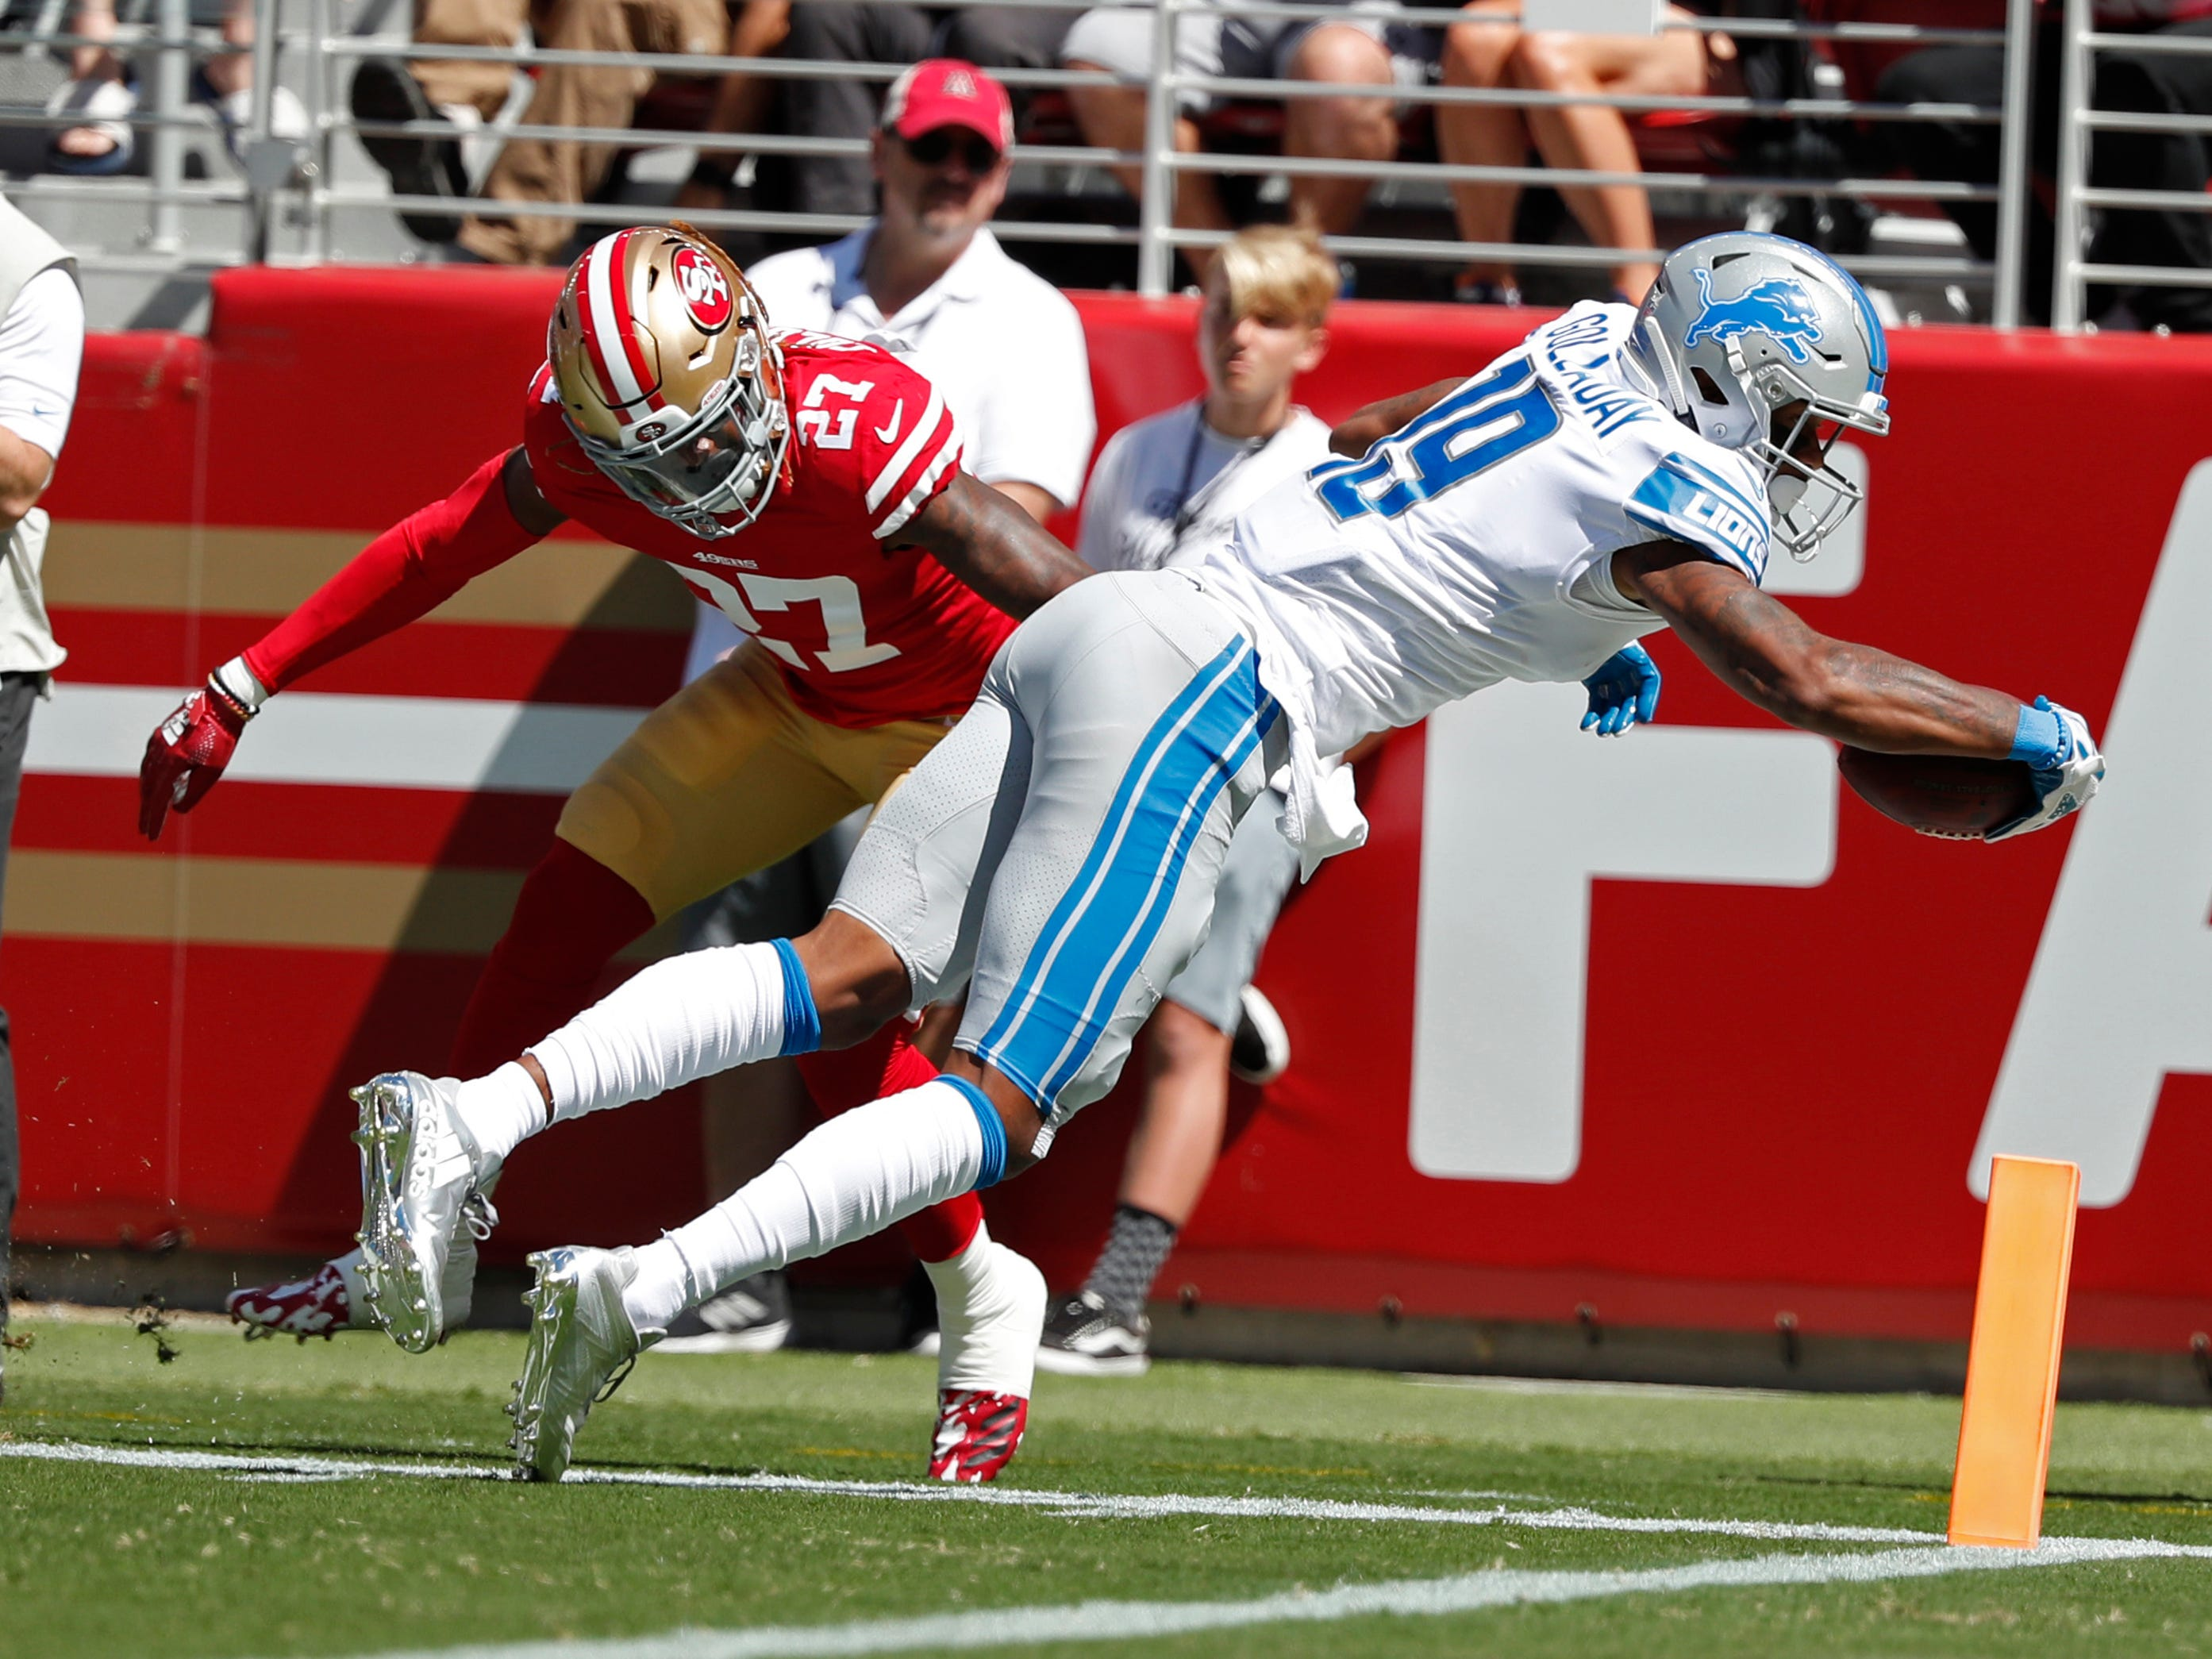 Detroit Lions wide receiver Kenny Golladay scores a touchdown as San Francisco 49ers defensive back Adrian Colbert (27) looks on during the first half.